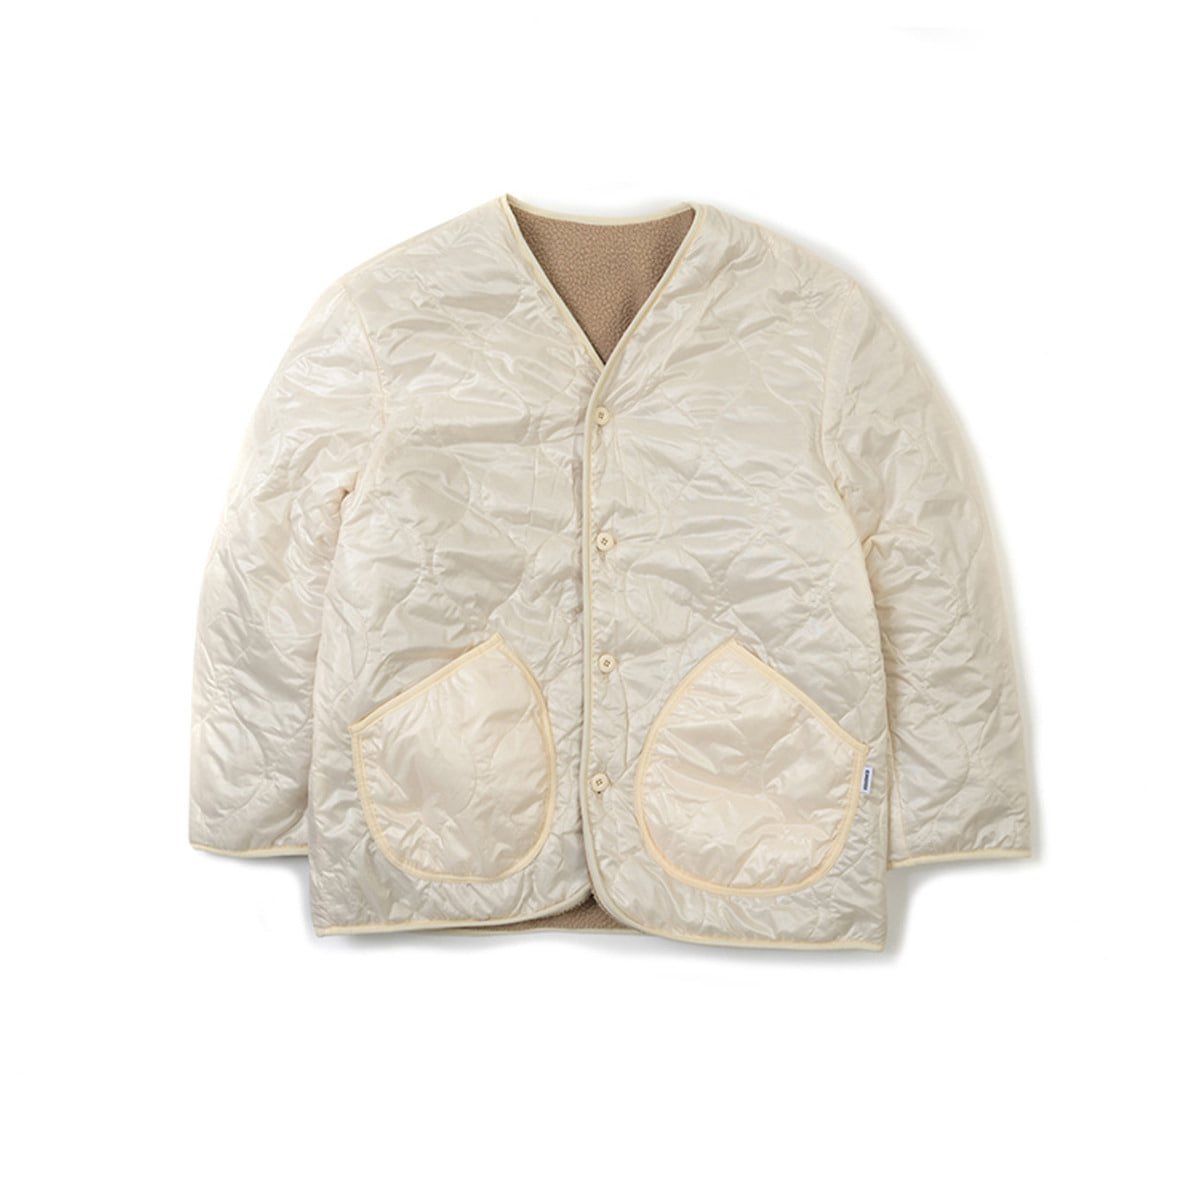 Reversible Two-Way Jacket, Ivory